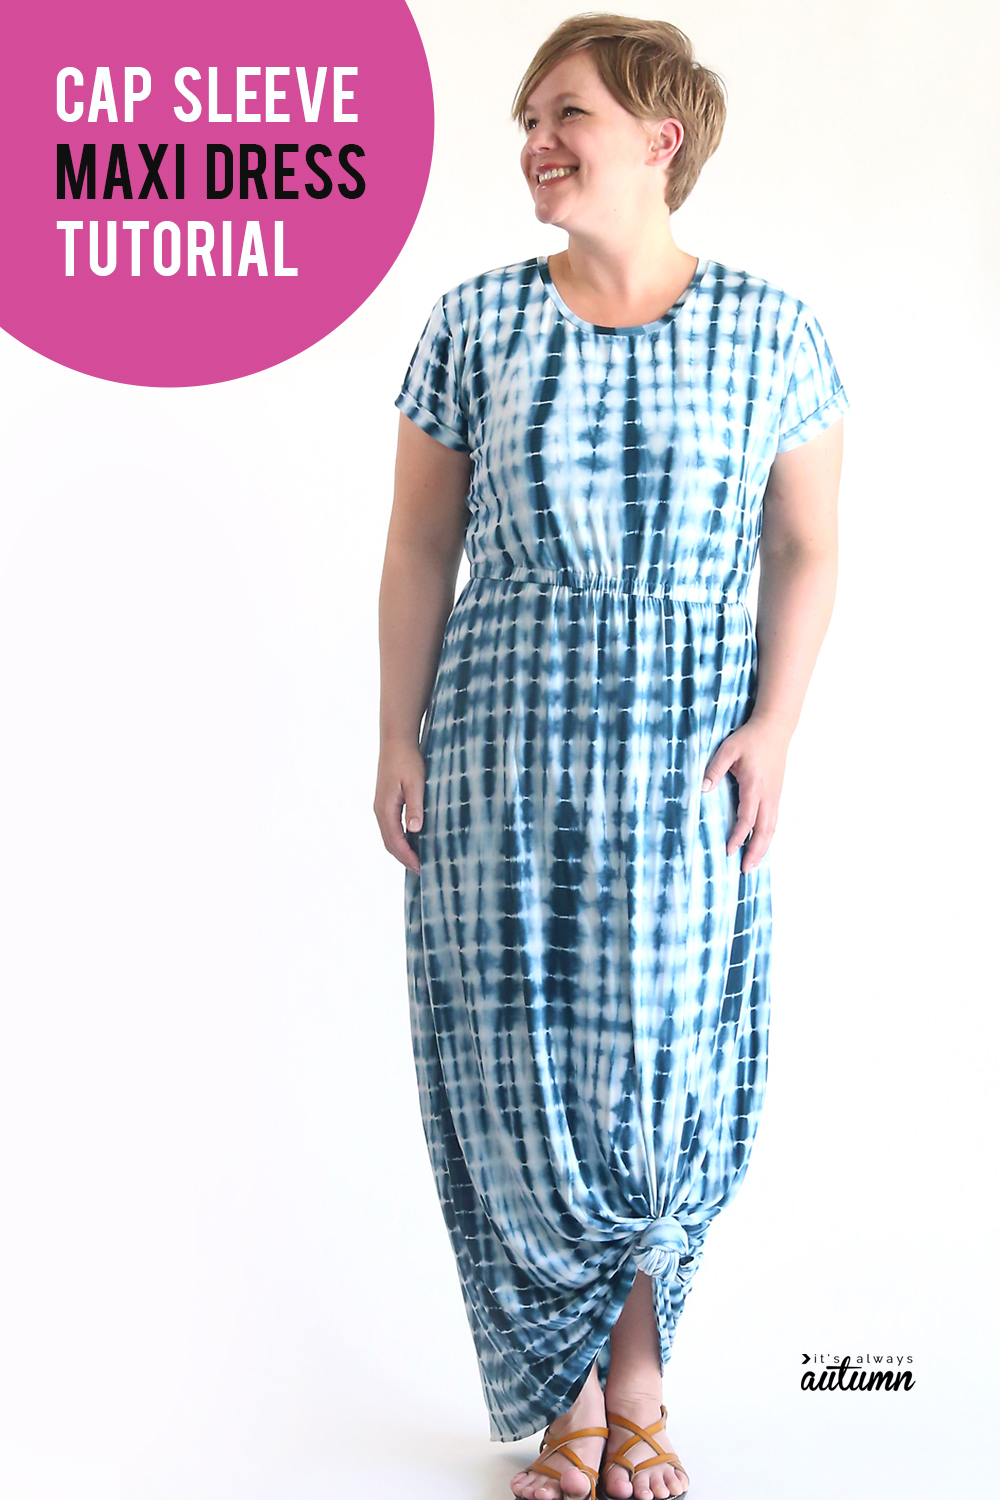 Learn how to make a cute maxi dress with sleeves! Cap sleeve maxi dress sewing tutorial.